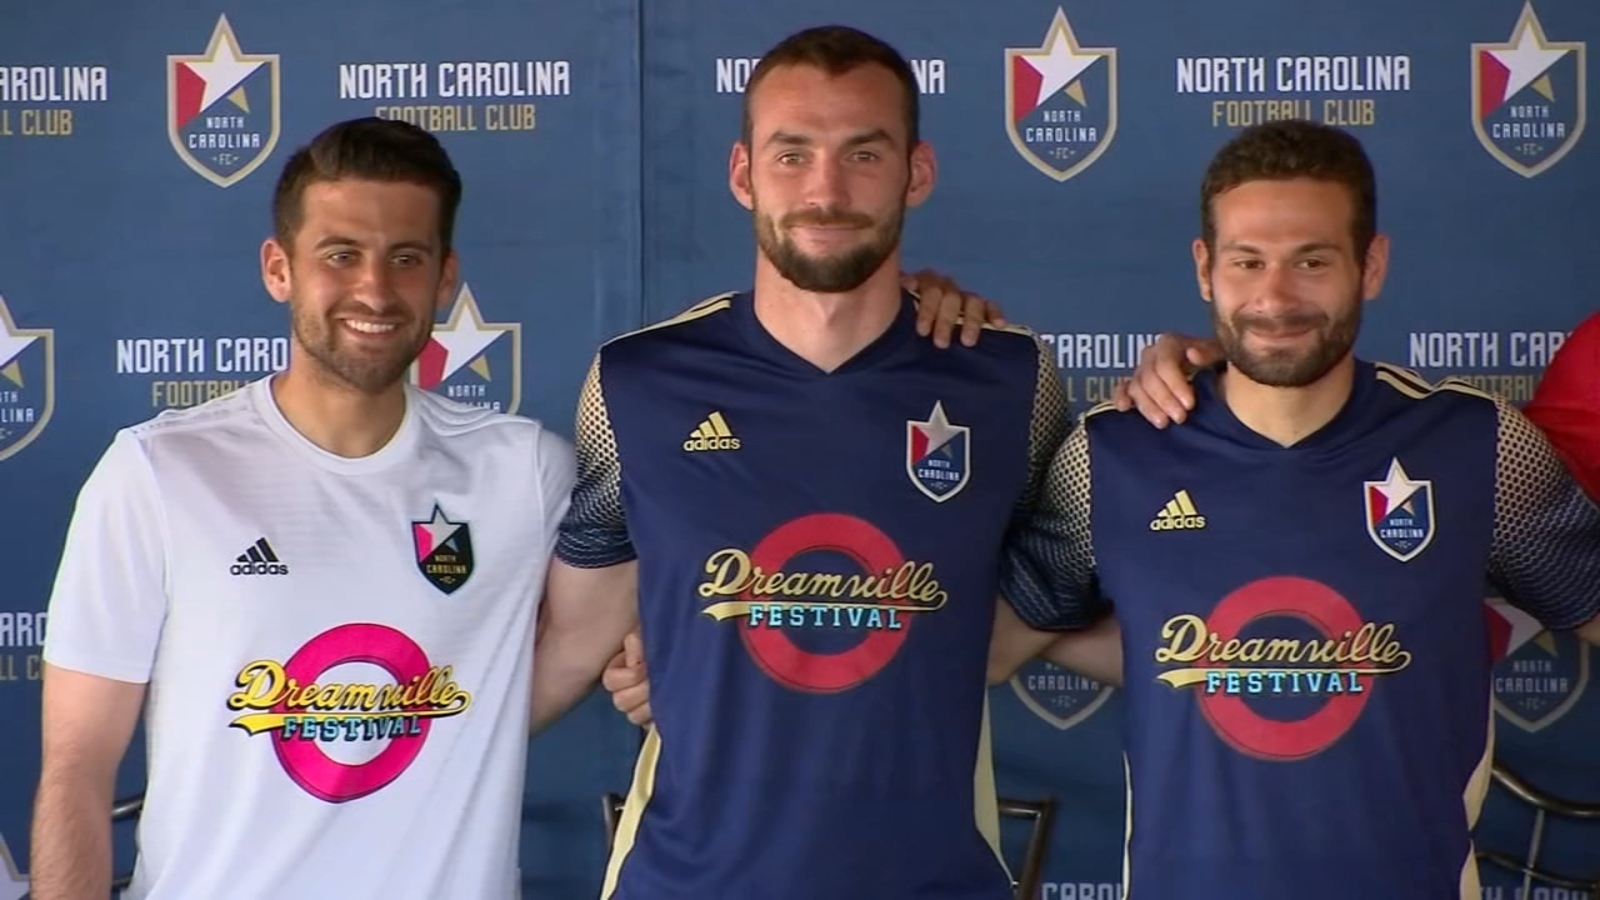 North Carolina FC partners with J.Cole's Dreamville Festival for new uniforms 1